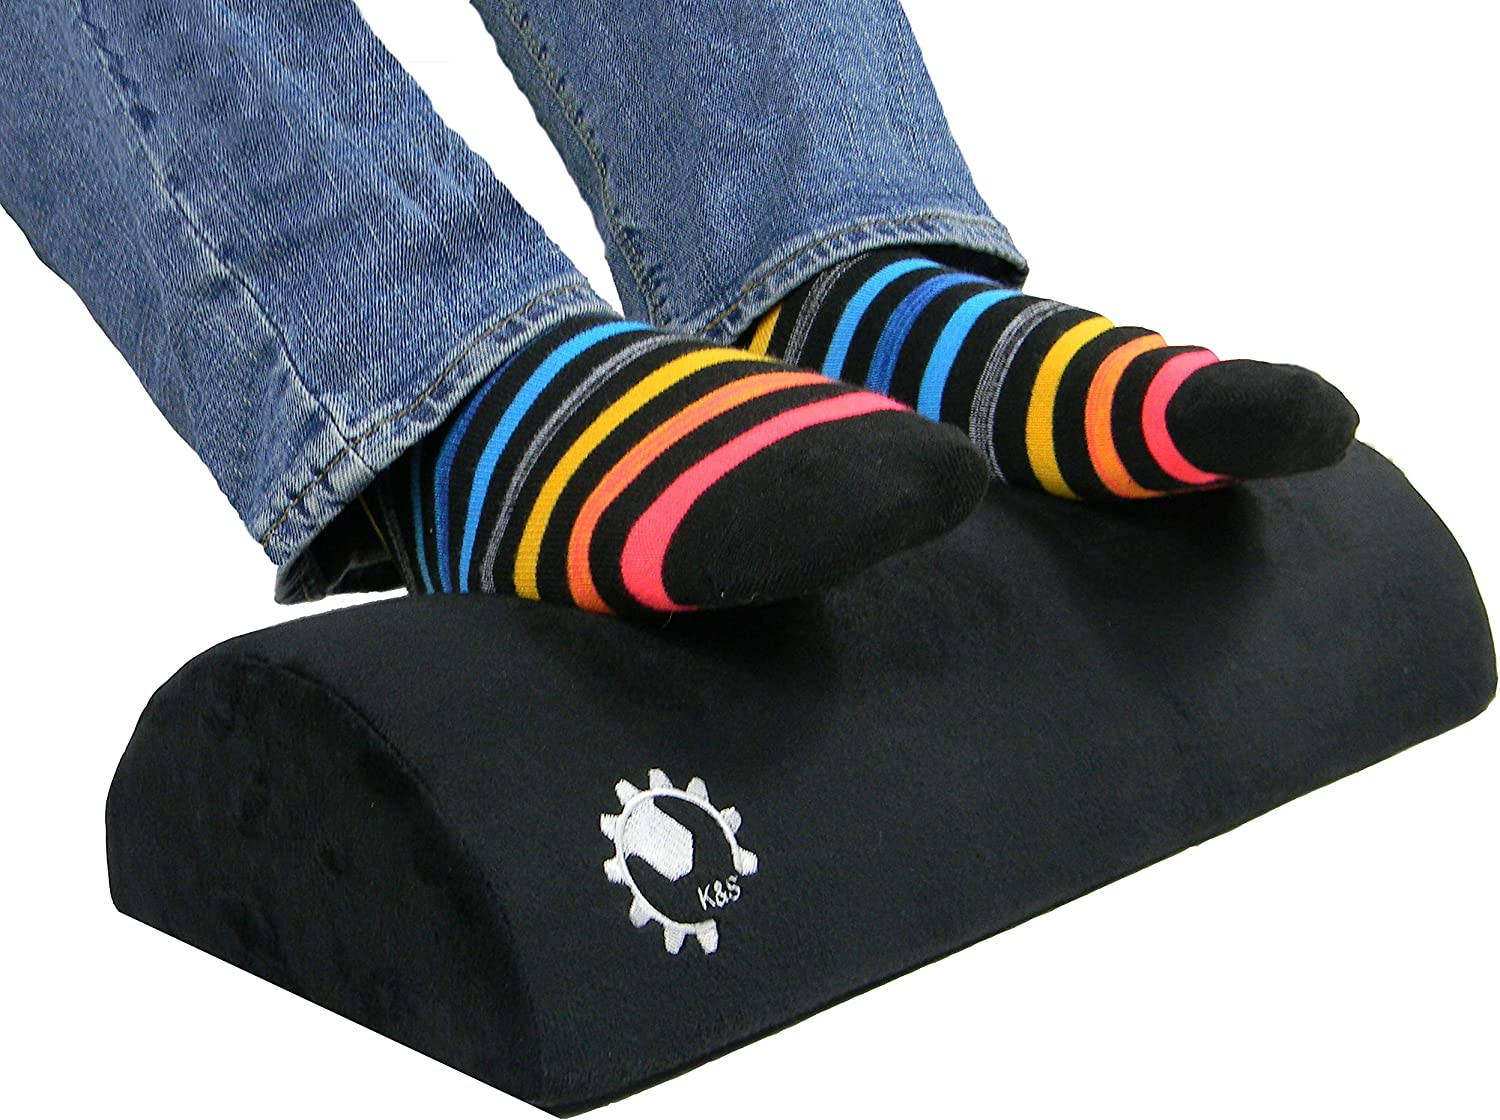 K S Solutions Foot Rest Cushion for Under Desk, Ergonomic Support for Foot, Leg and Knee Pain. Help Relieve Sciatica. Ideal for Office or Home. Perfect Size Optimum Leg Clearance. Black